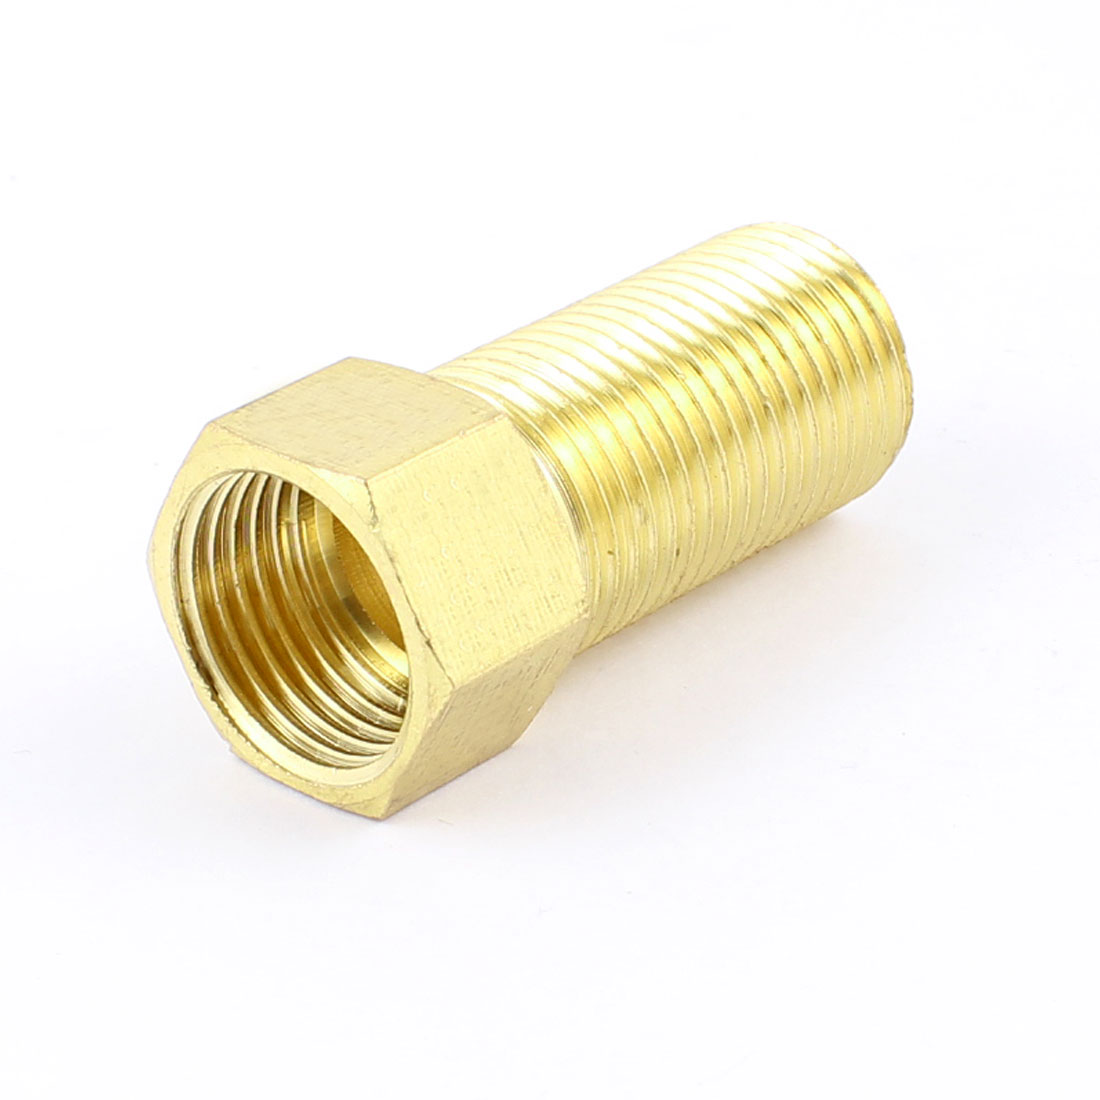 "Brass 1/2"" PT Male/Female Thread Hex Bushing Pneumatic Piping Quick Coupler"